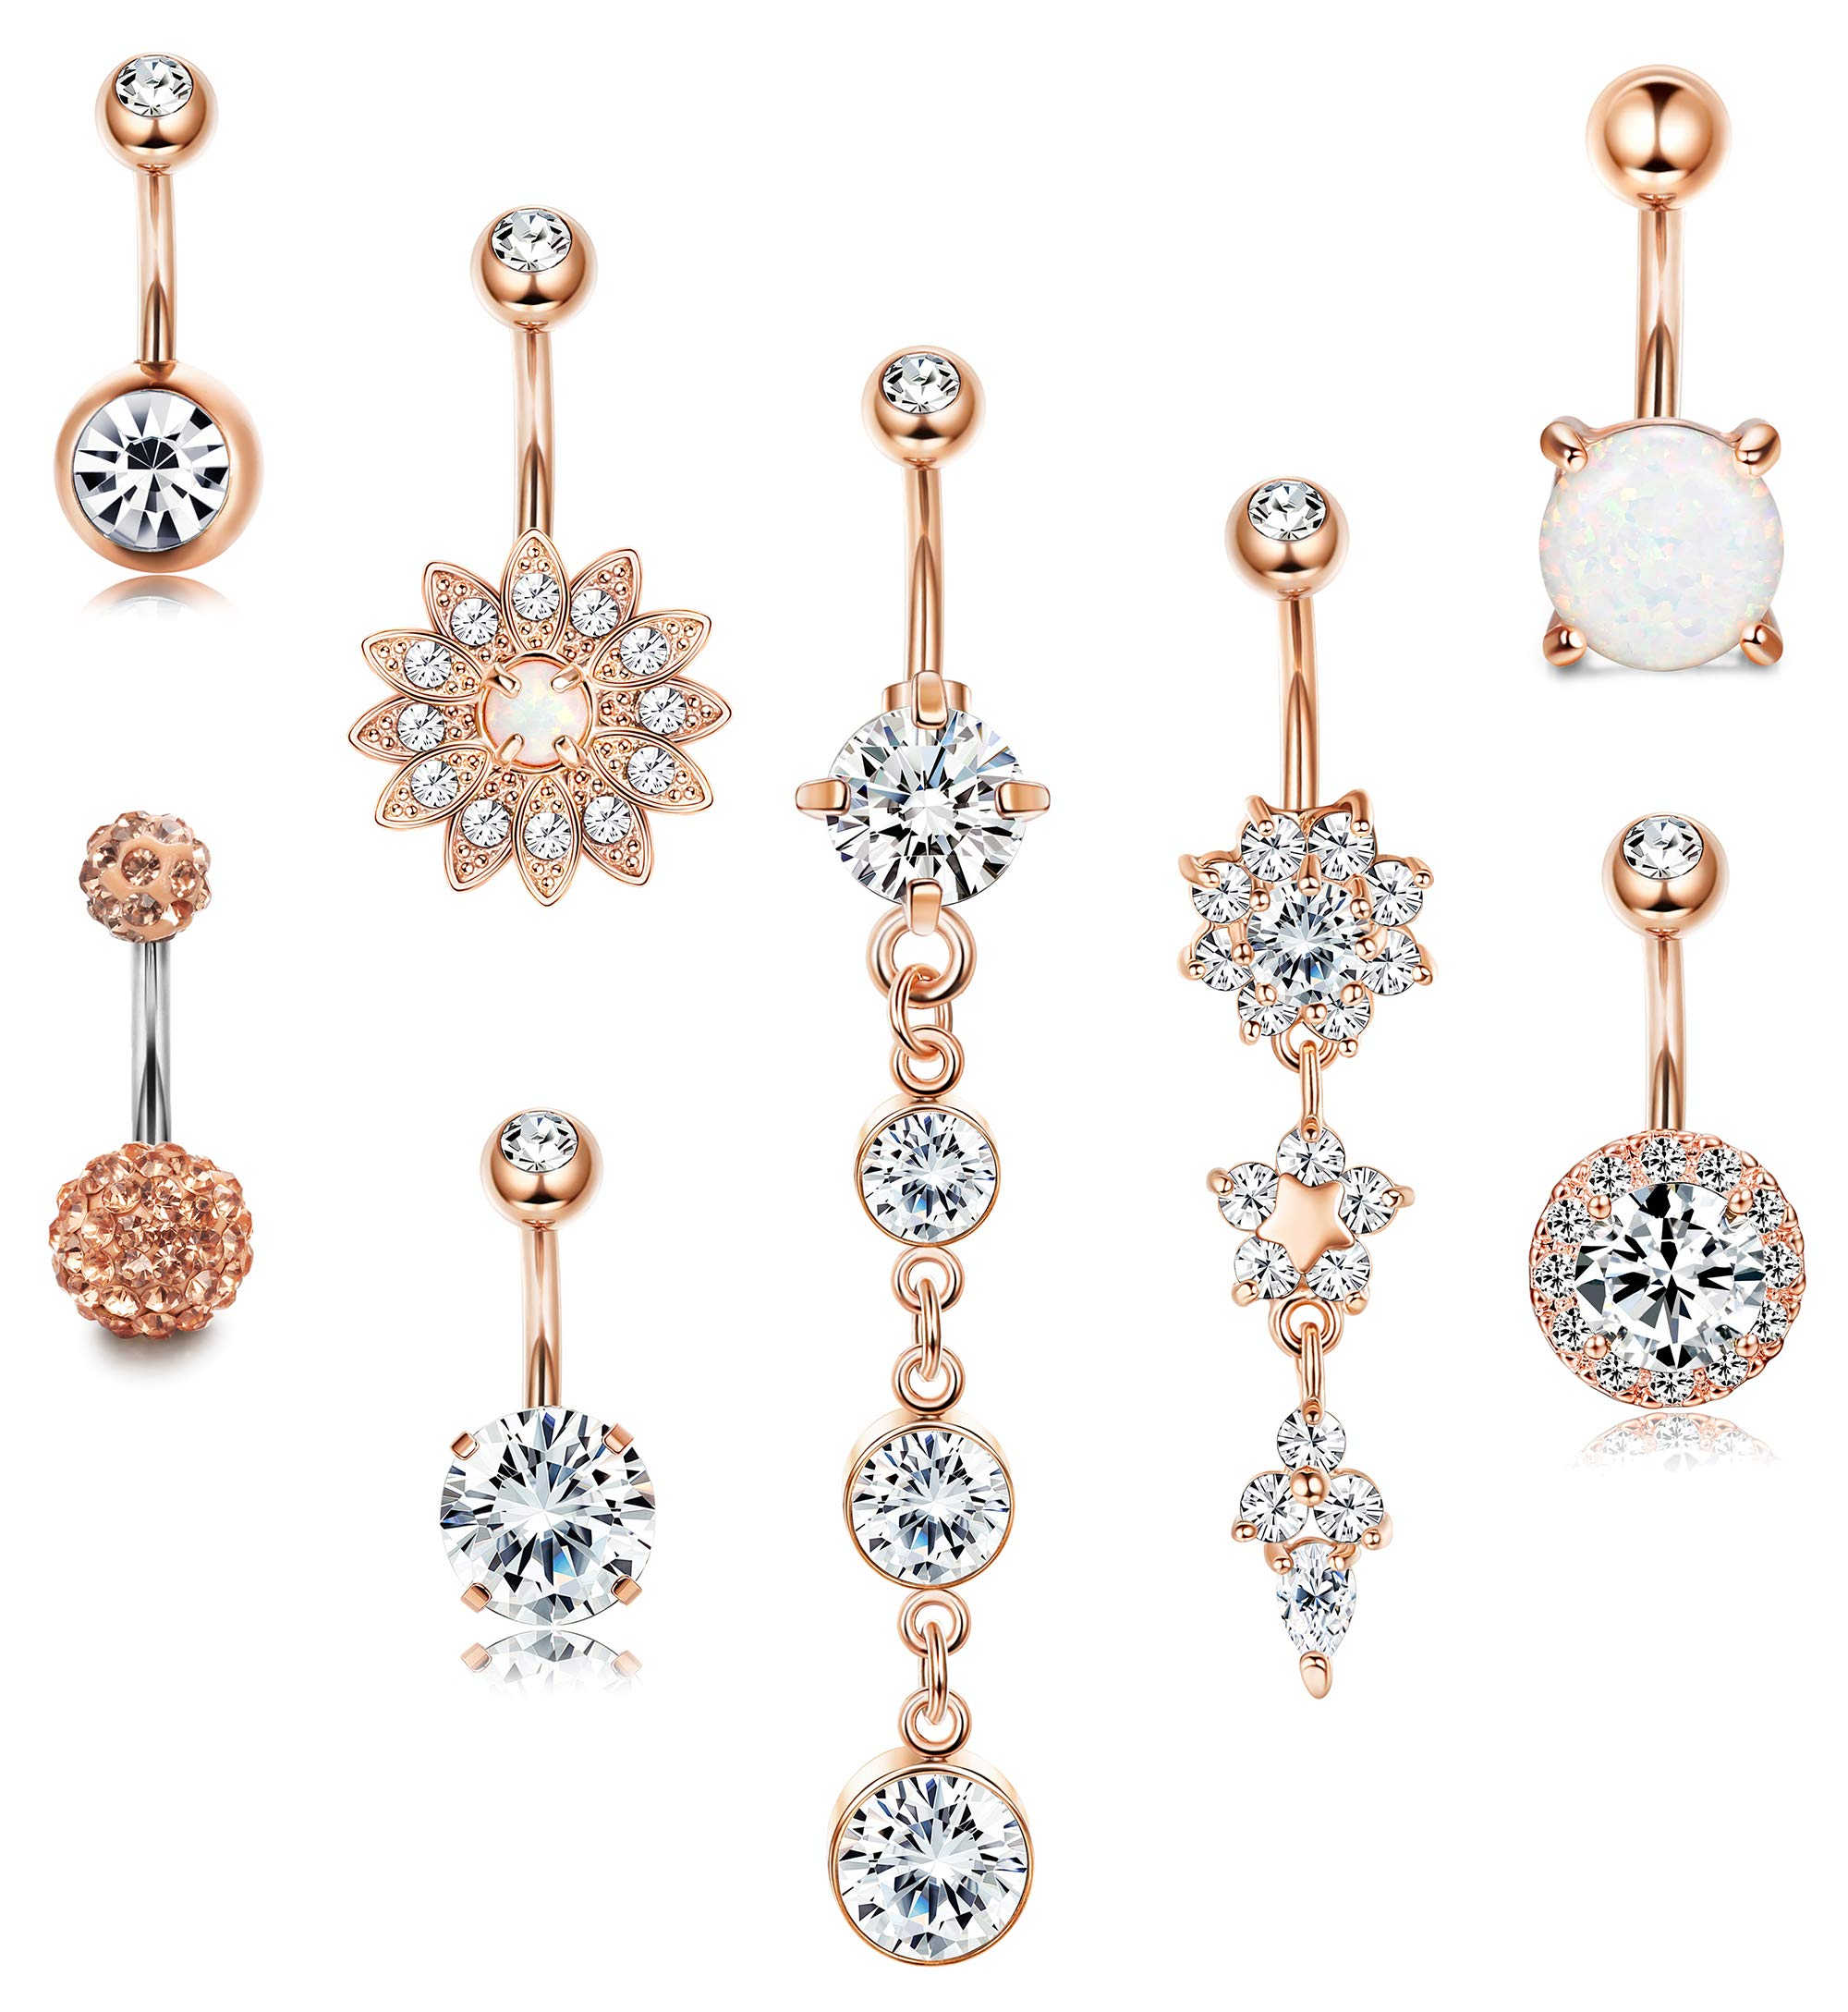 LOYALLOOK 14G Surgical Steel Belly Button Rings Dangle for Women Girls Navel Rings Opal Flower CZ Body Piercing Rose Gold Tone by LOYALLOOK